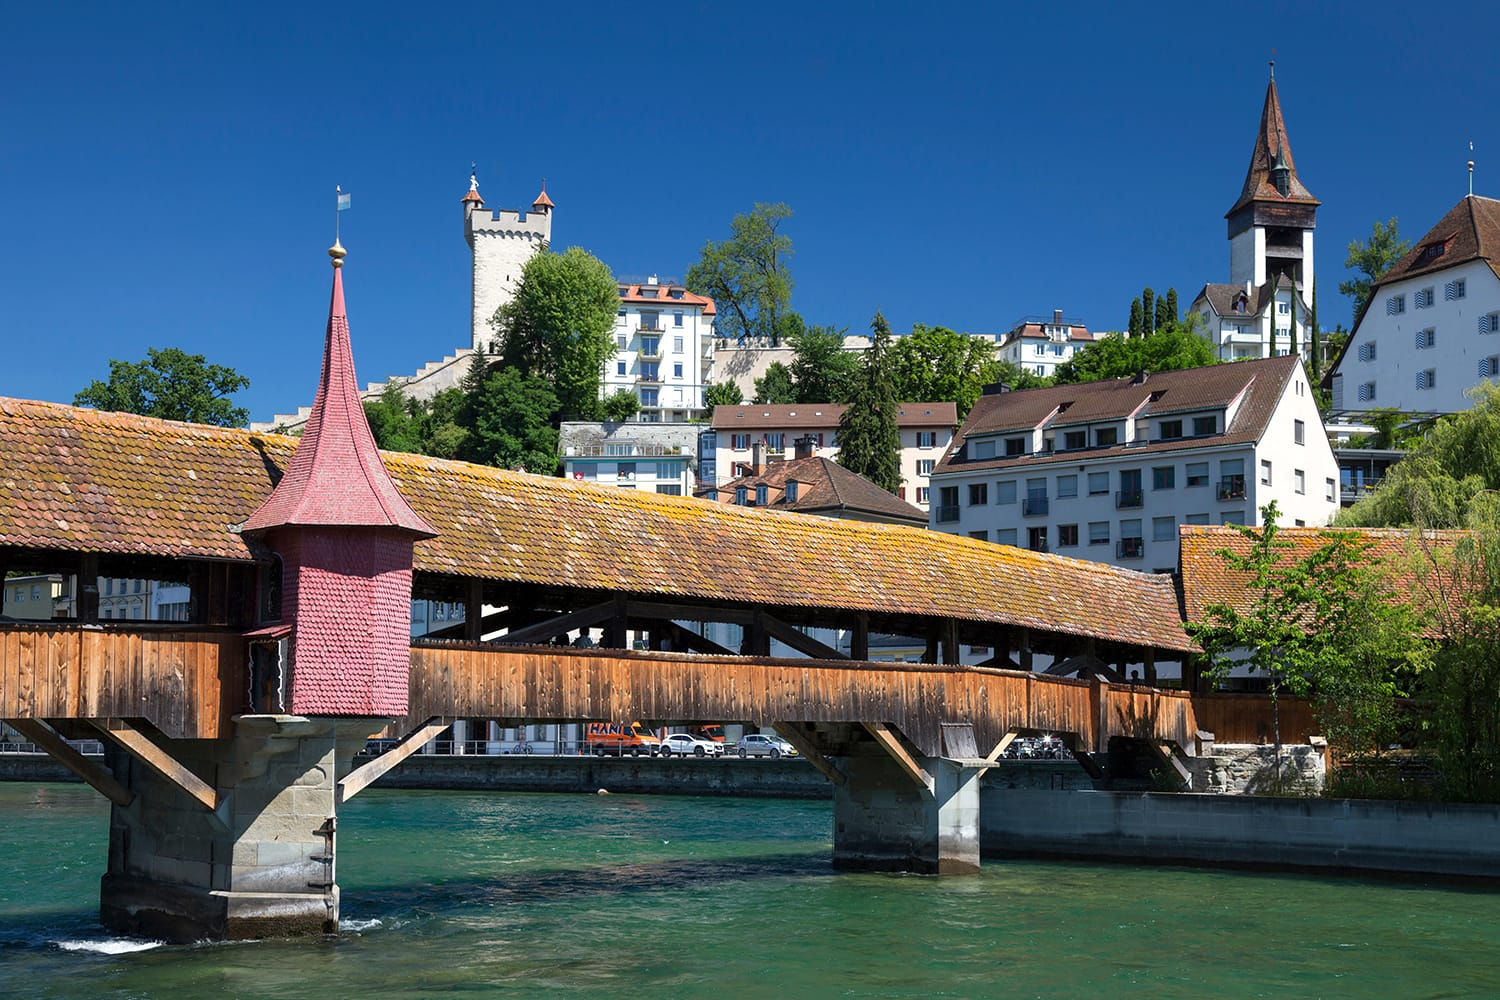 The Spreuer Bridge over the river Reuss, Lucerne, Switzerland